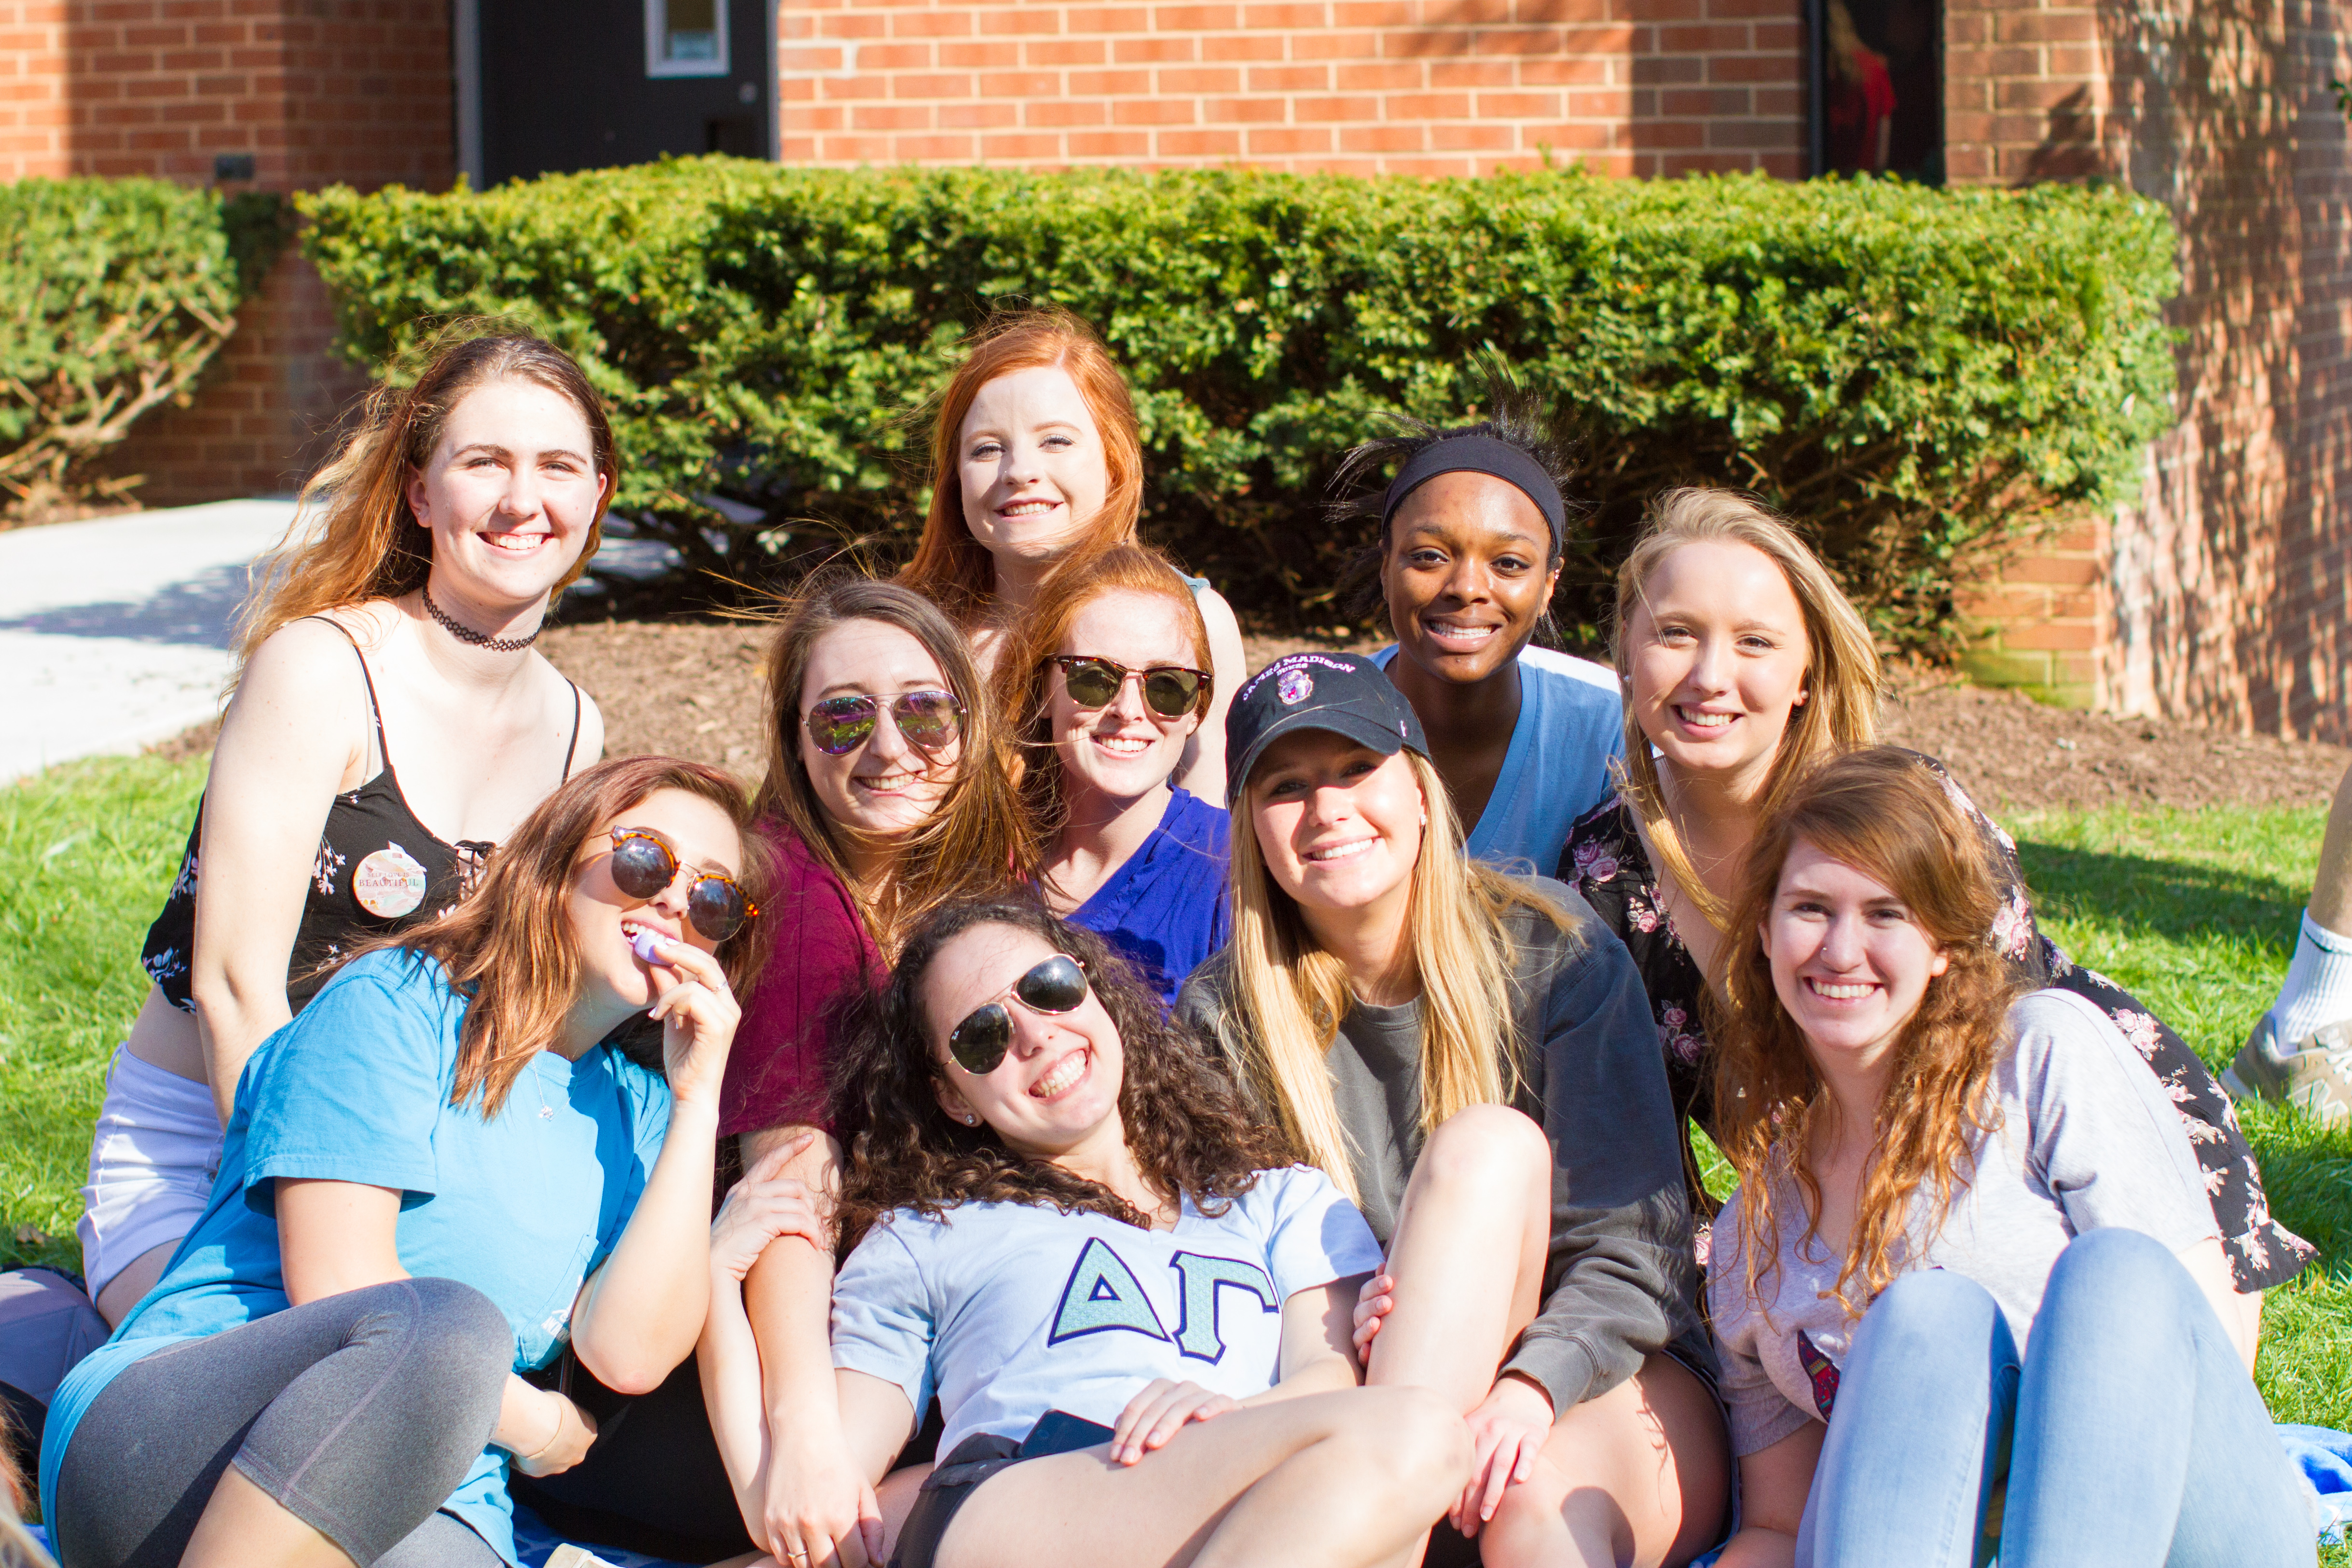 Delta Gamma members at Egg Hunt on the Row 2018